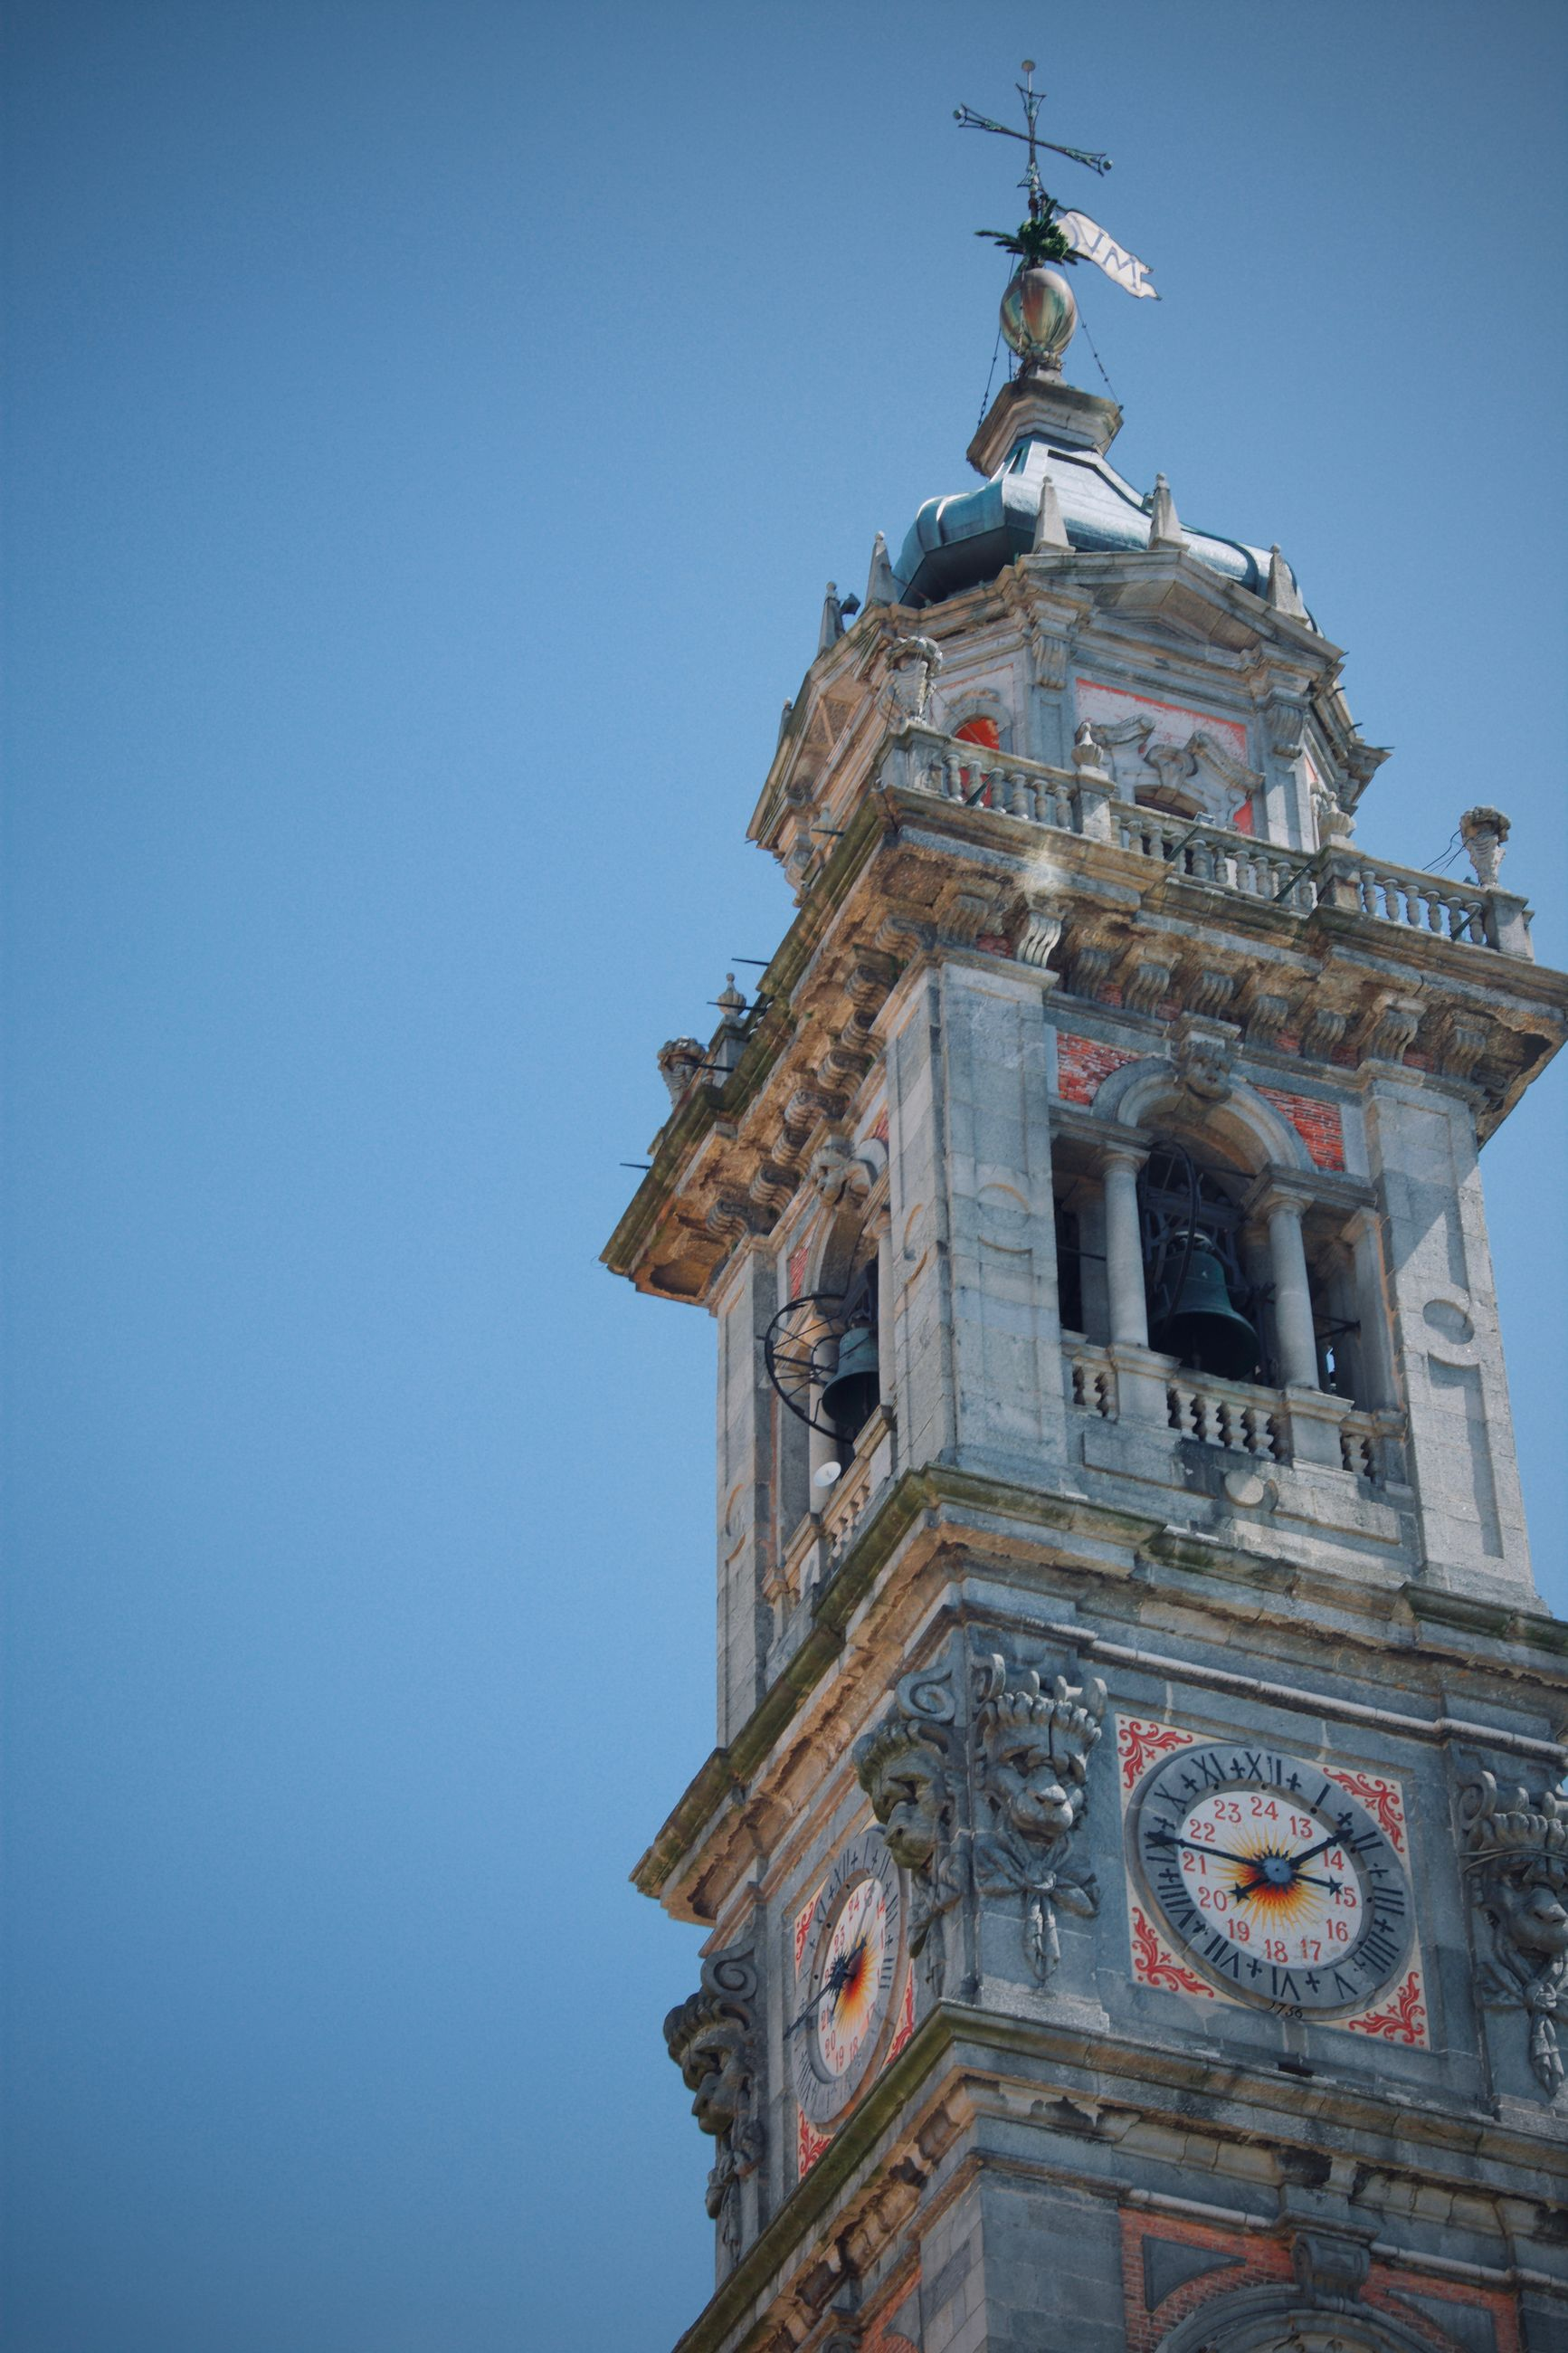 LOW ANGLE VIEW OF CLOCK TOWER BY BUILDING AGAINST SKY